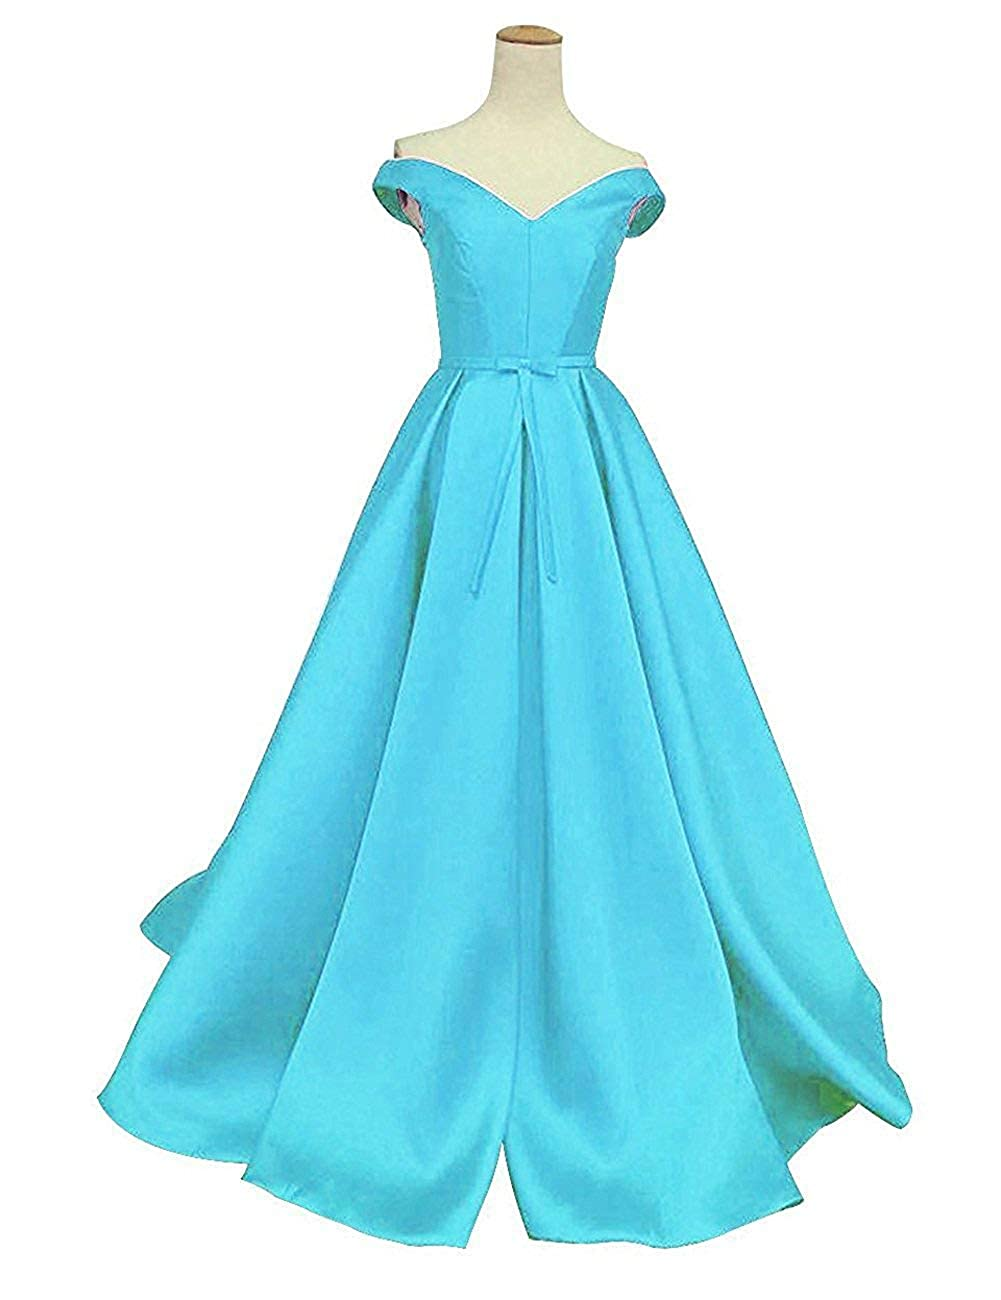 bluee DreamSkirts Women's Off The Shoulder ALine Evening Ball Gowns with Bow